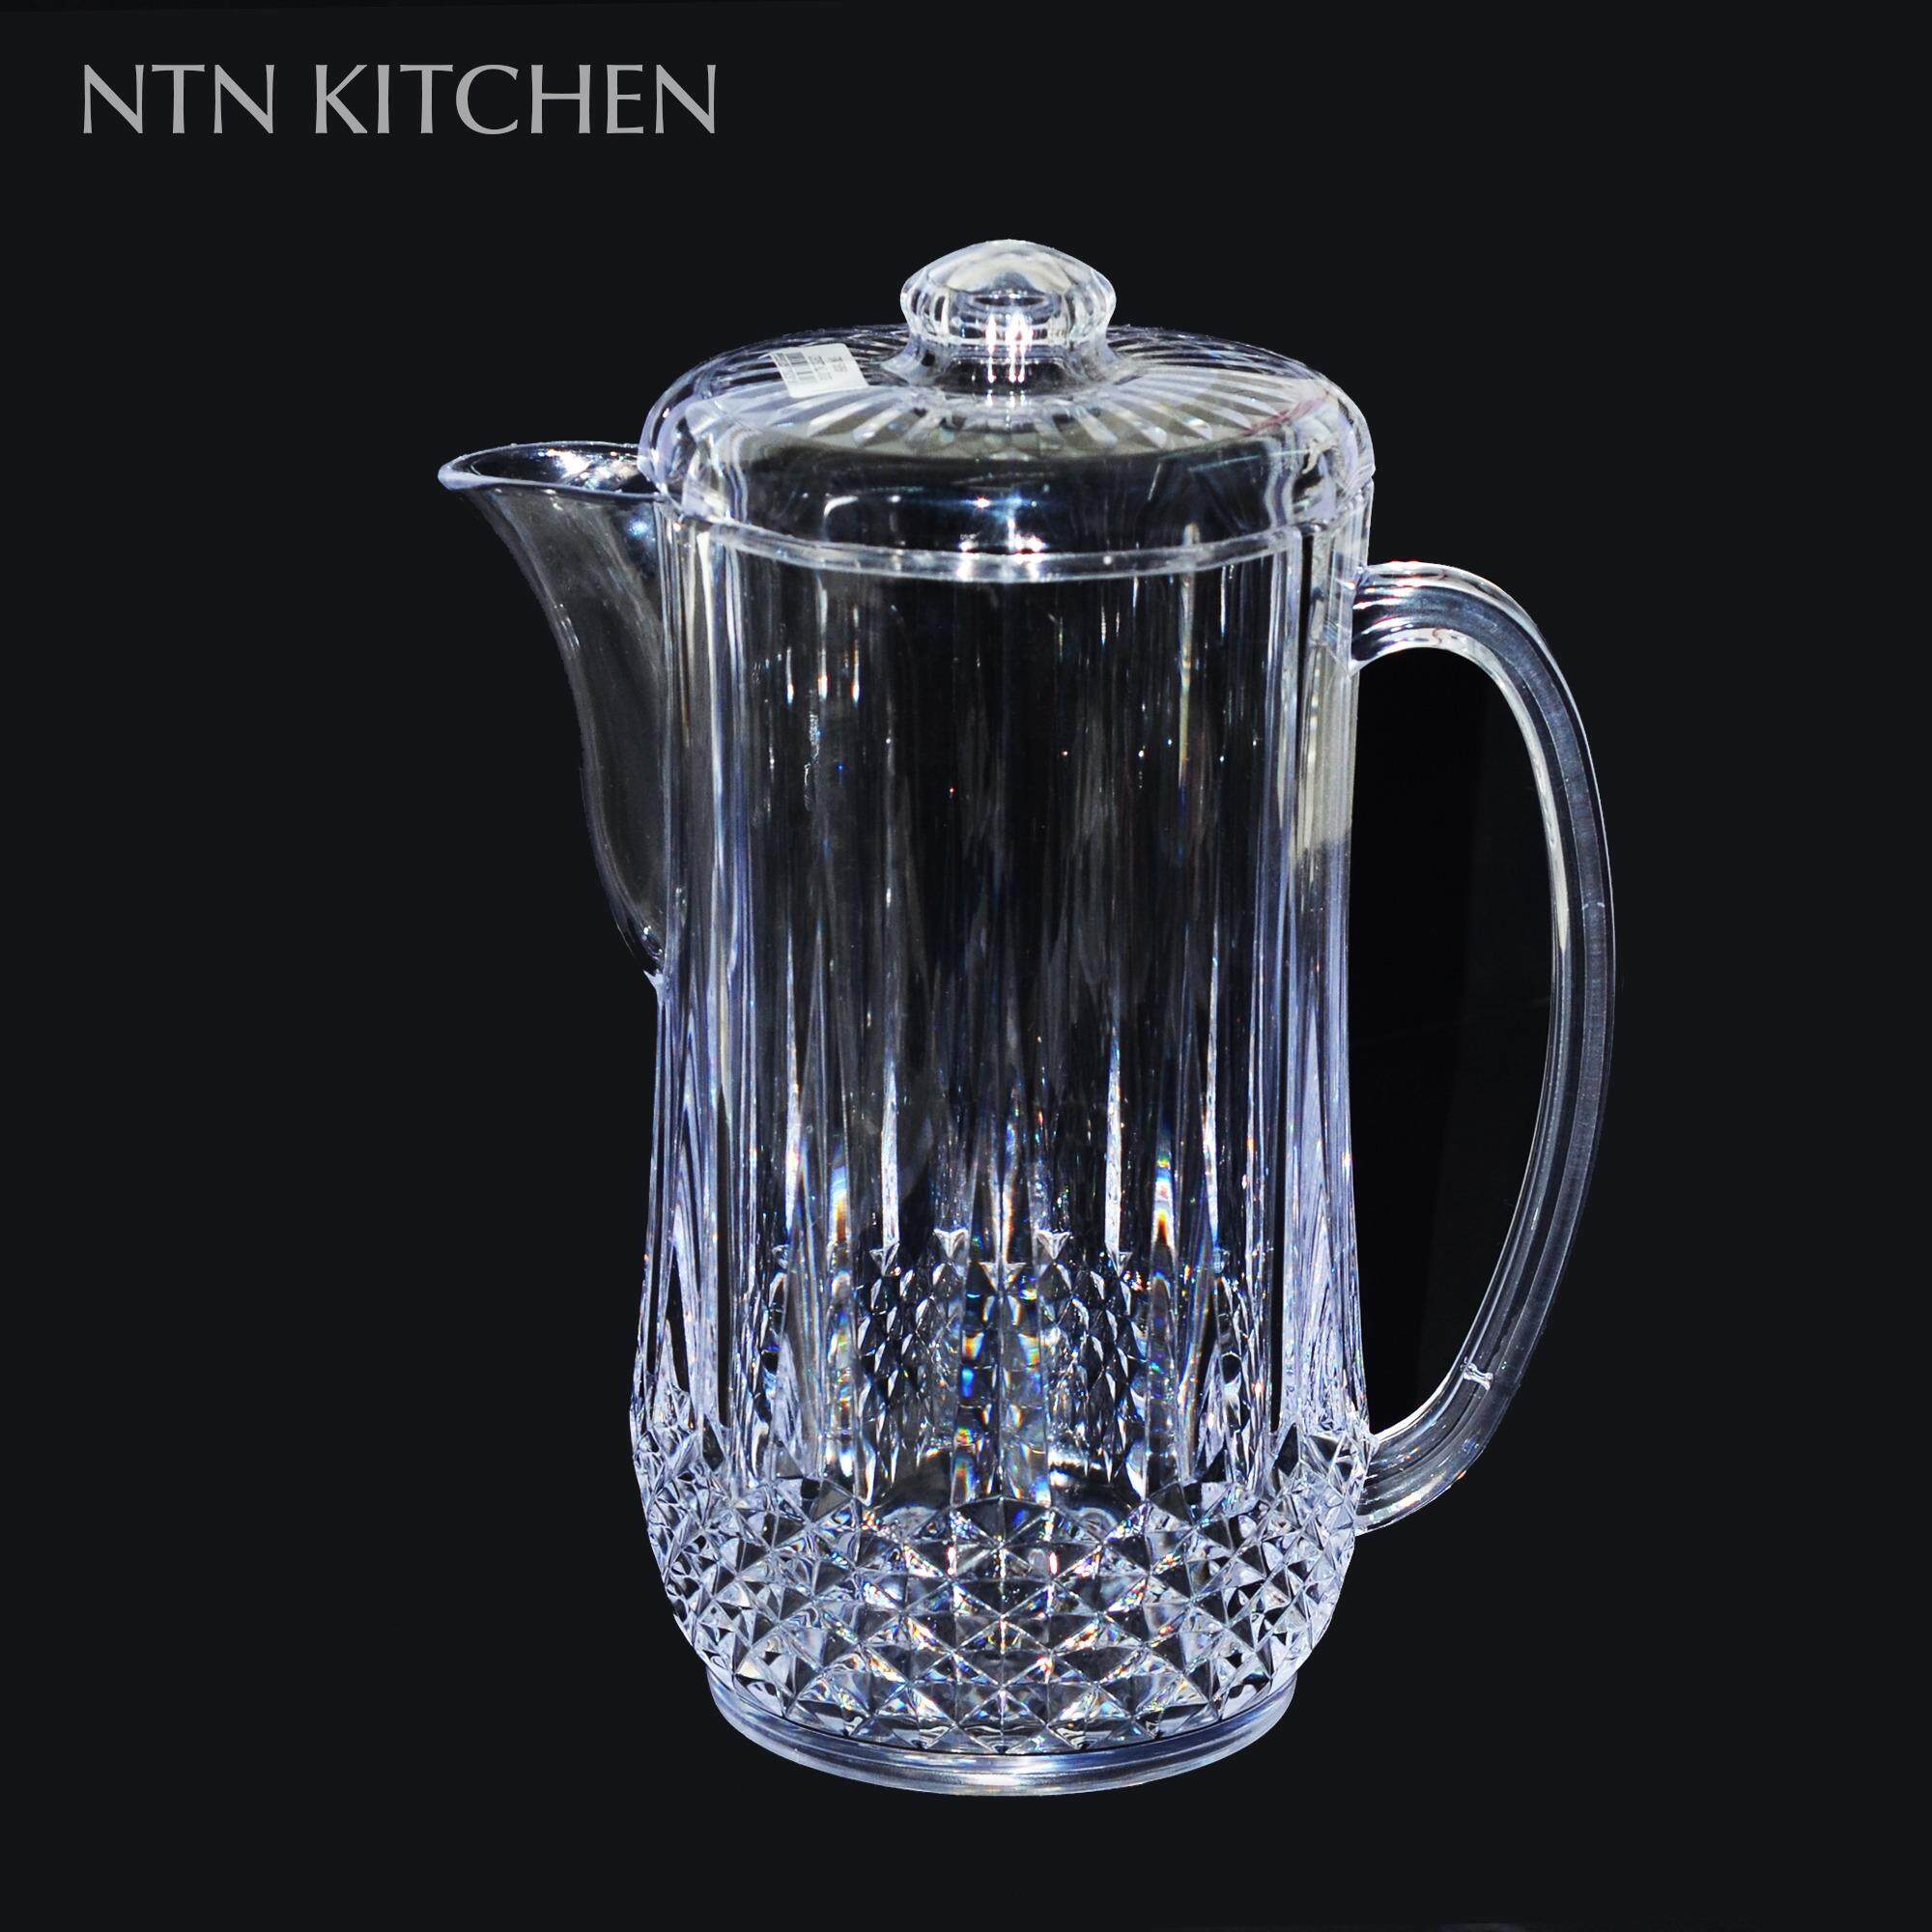 (1 Liter) Plastic Crystal Juice / Water Jug With Cover By Ntn Kitchen Store.